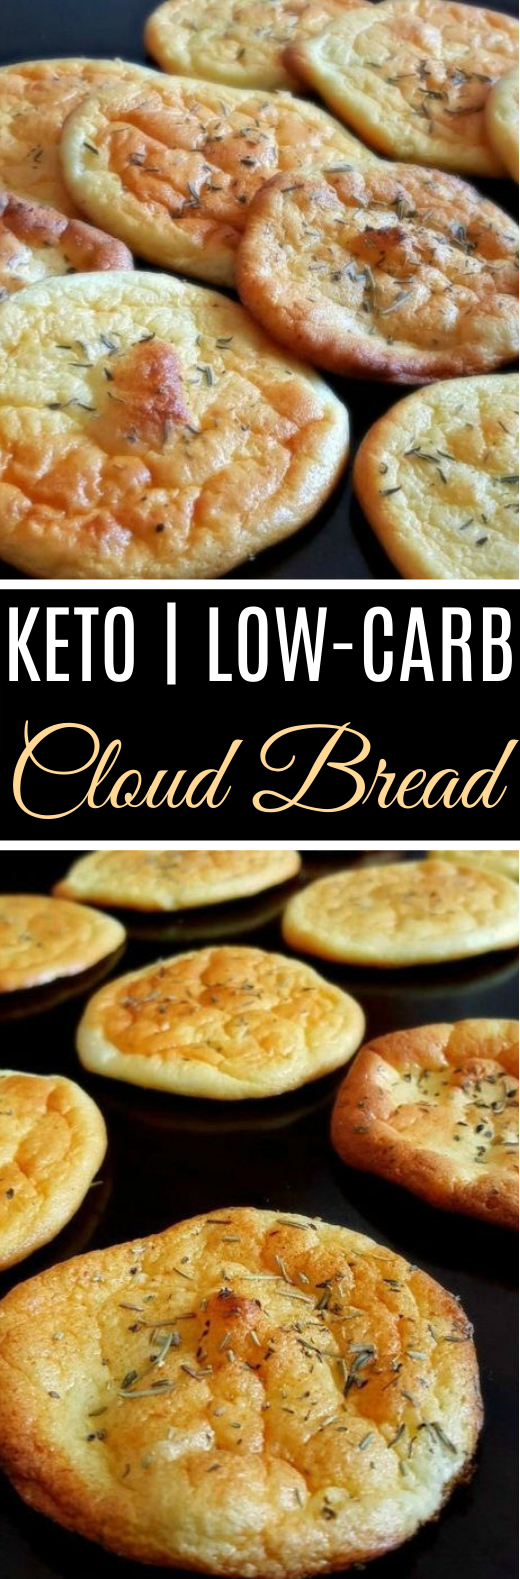 No-Carb Cloud Bread with Only 4 Ingredients #healthy #keto #breakfast #lowcarb #diet